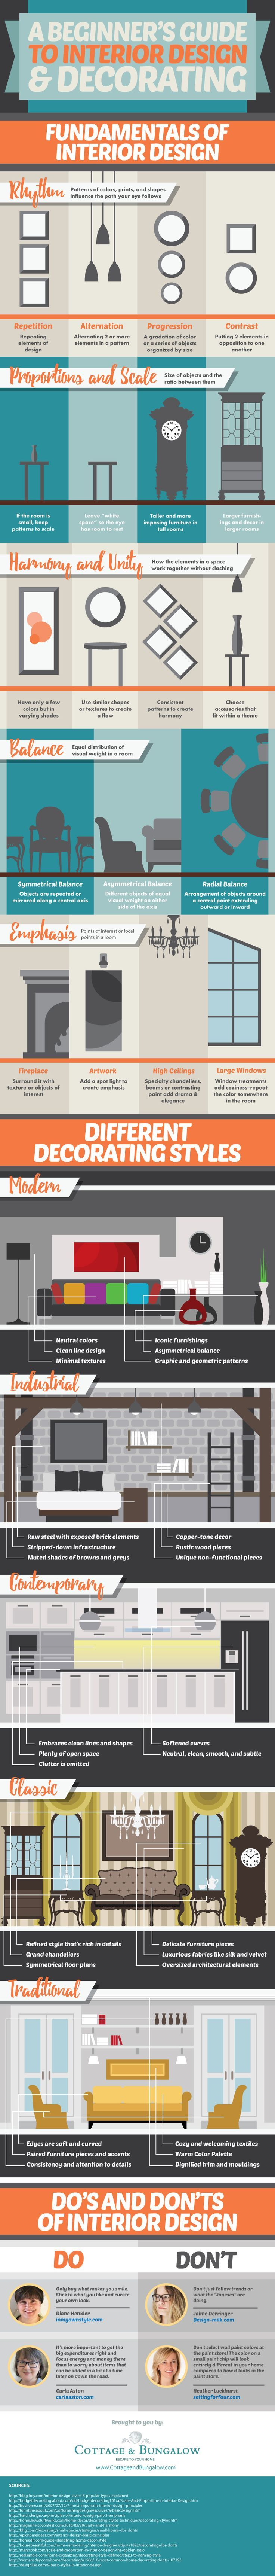 The Beginneru0027s Guide To Interior Design And Decorating!